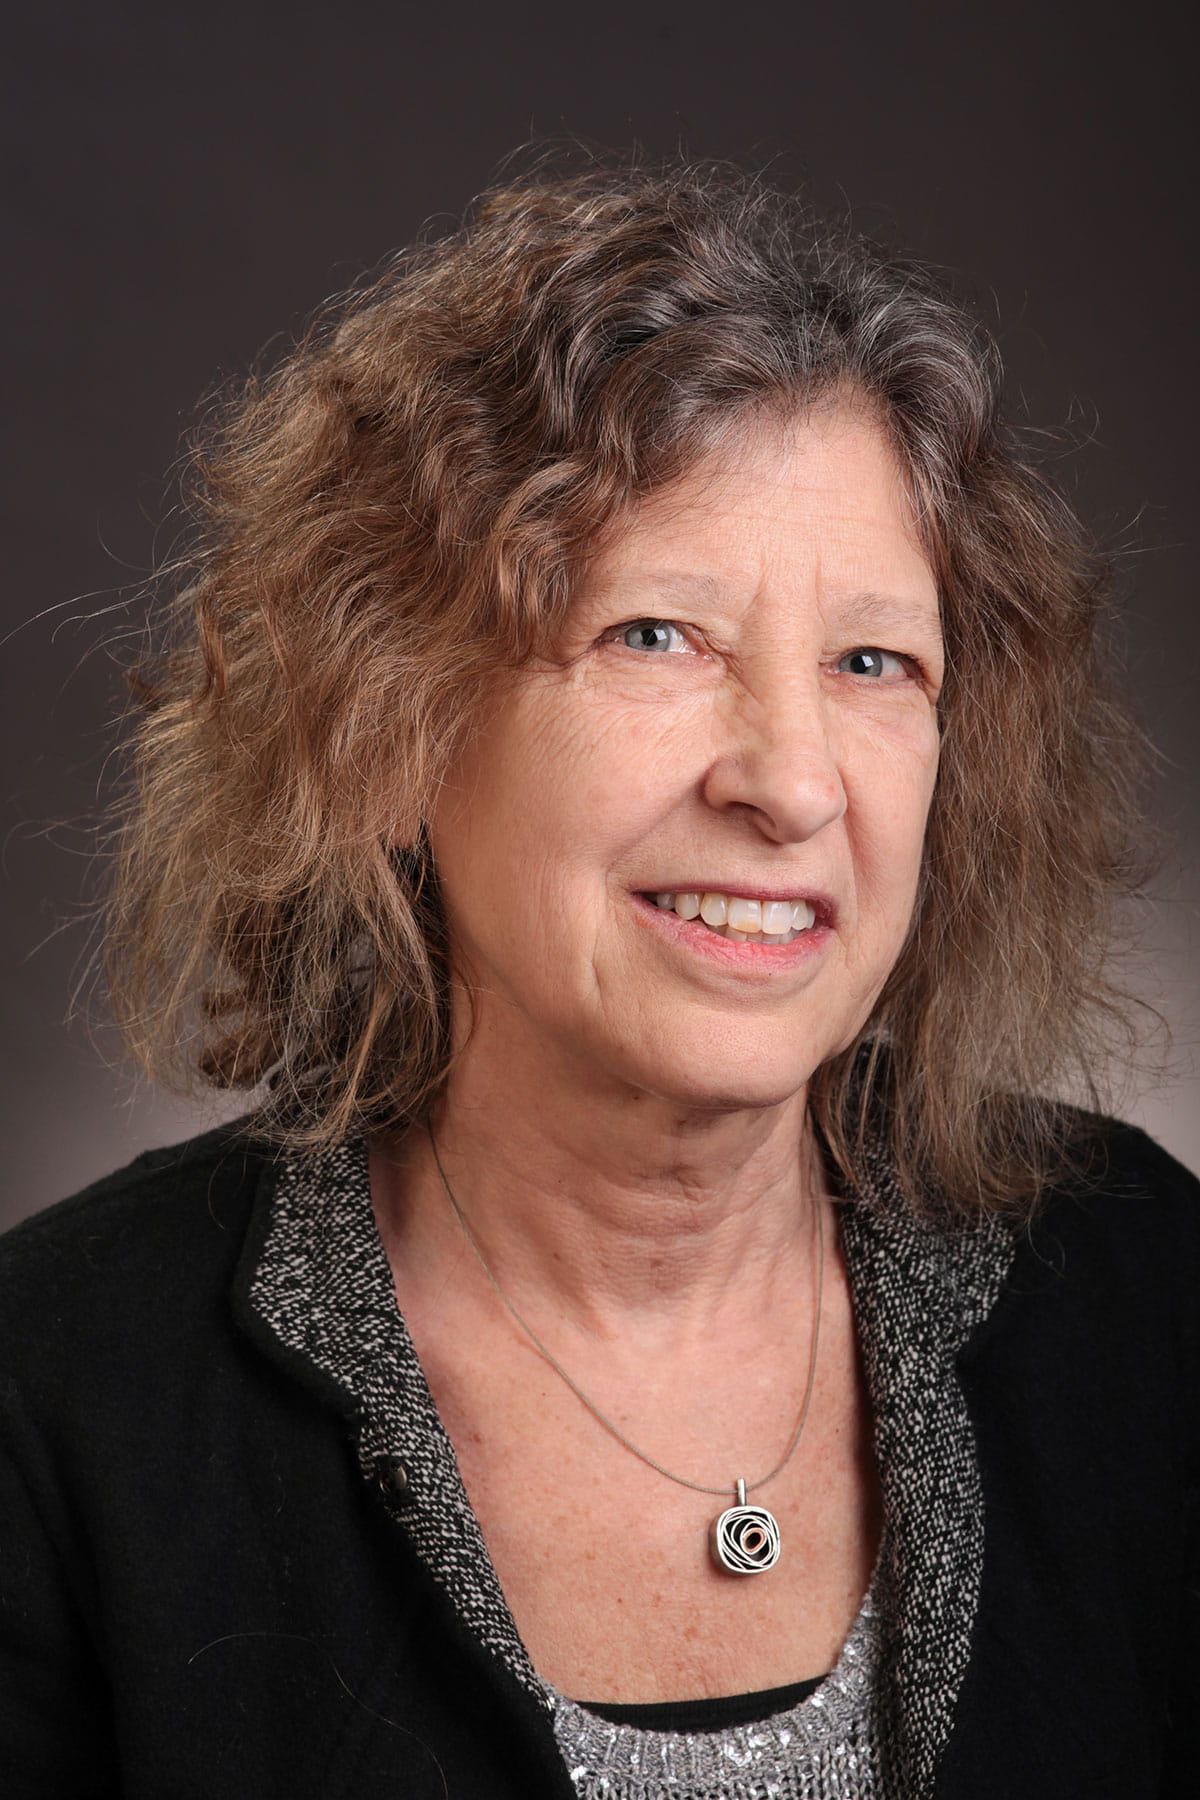 A photo of Nancy Ratner.